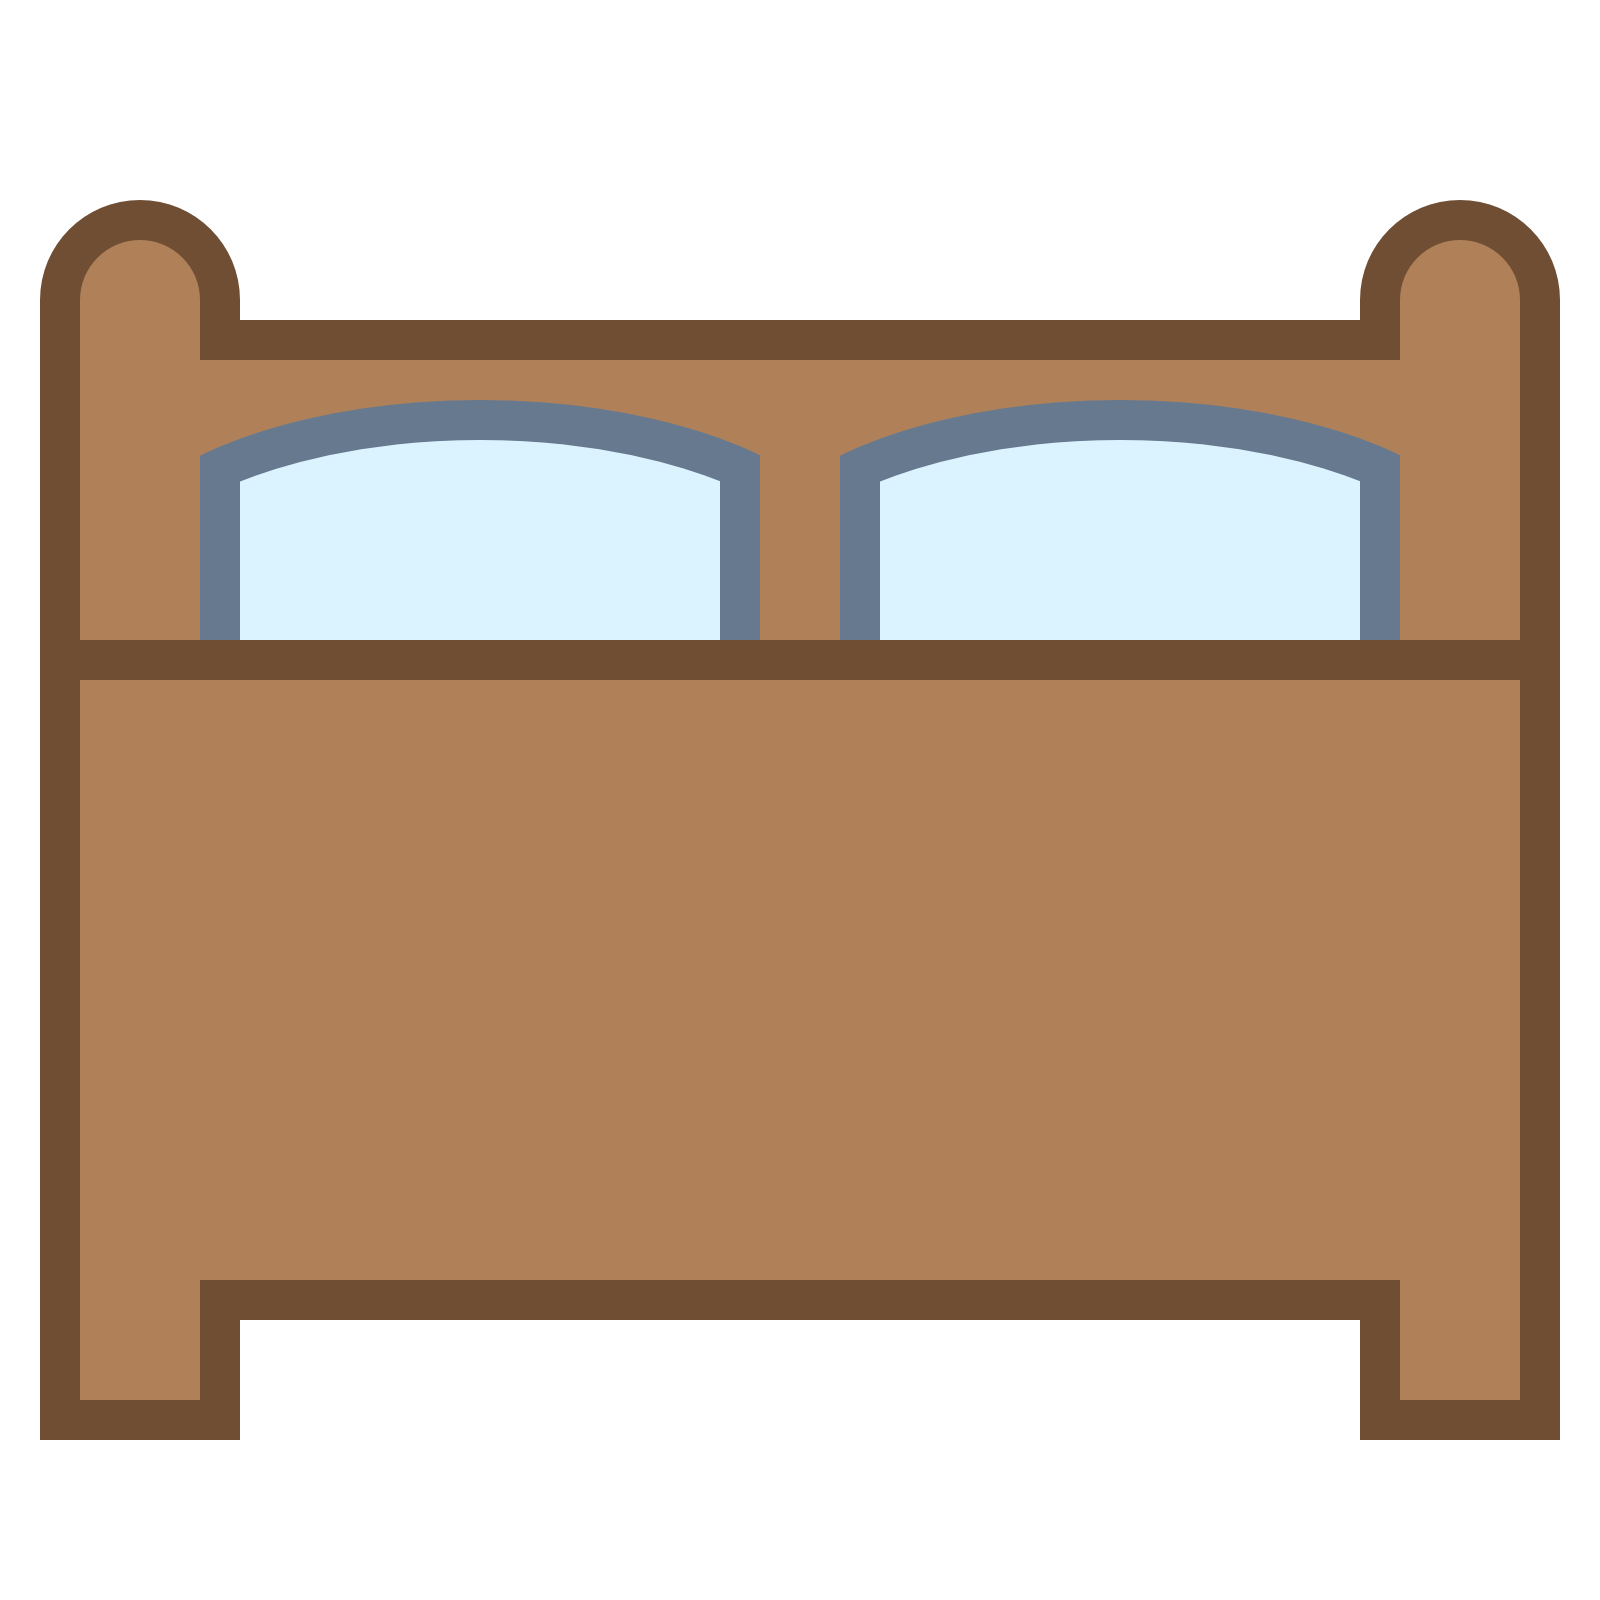 Rooms in a house clipart image royalty free library Bed Clipart Png. Bed Clip Art Clipart Png R - Deltasport.co image royalty free library